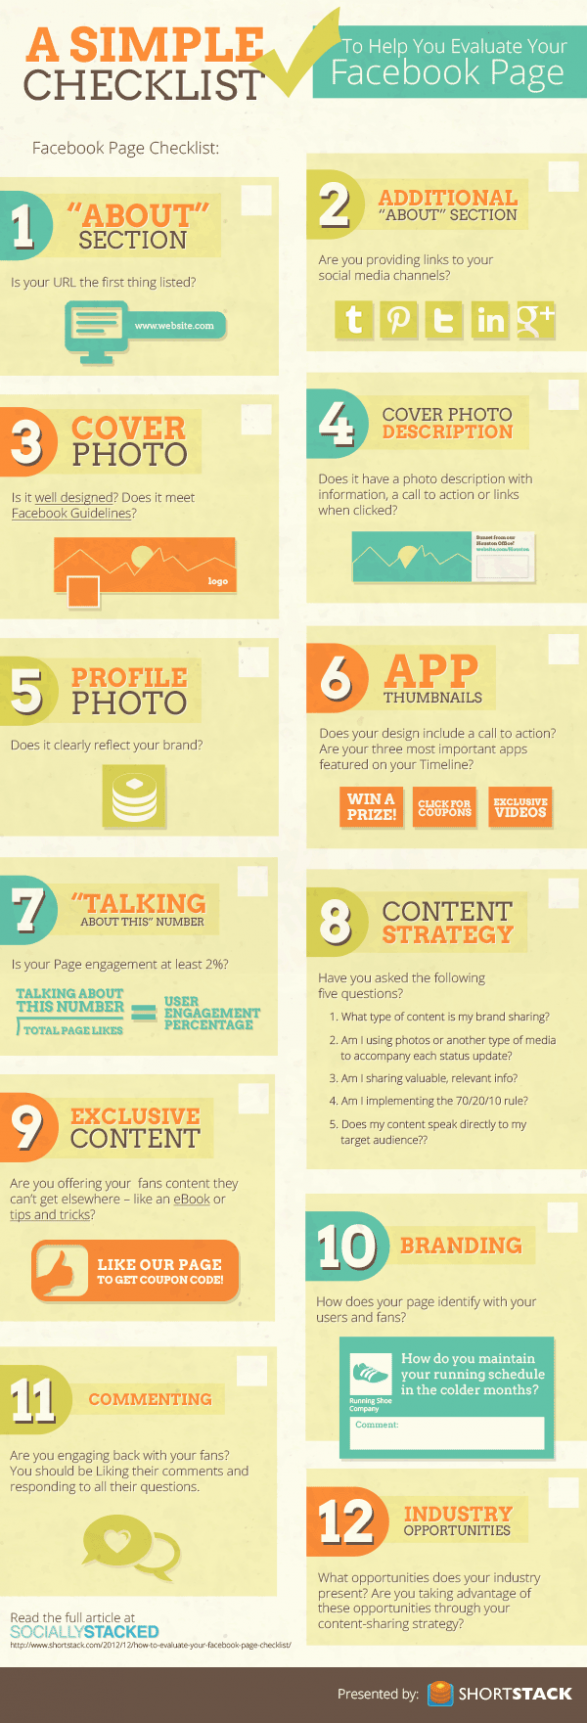 Checklist to help you Evaluate your Facebook Page